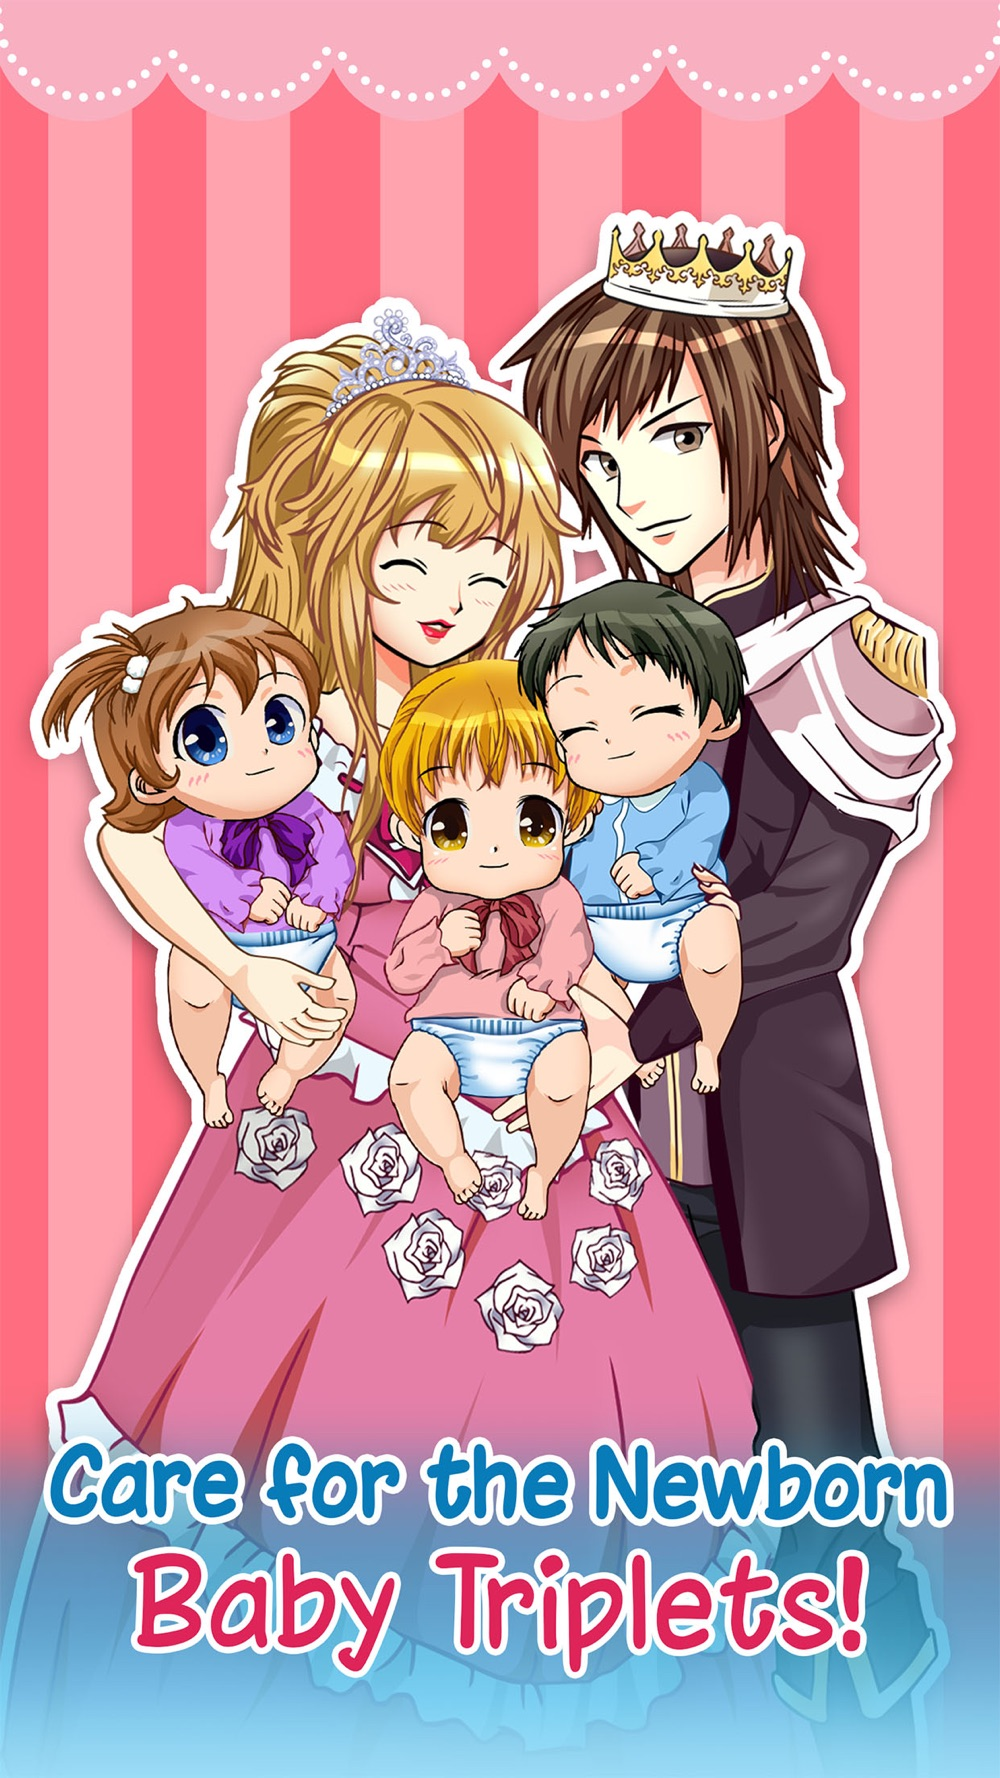 Hack tool for Anime Newborn Baby Care - Mommy's Dress-up Salon Sim Games for Kids!